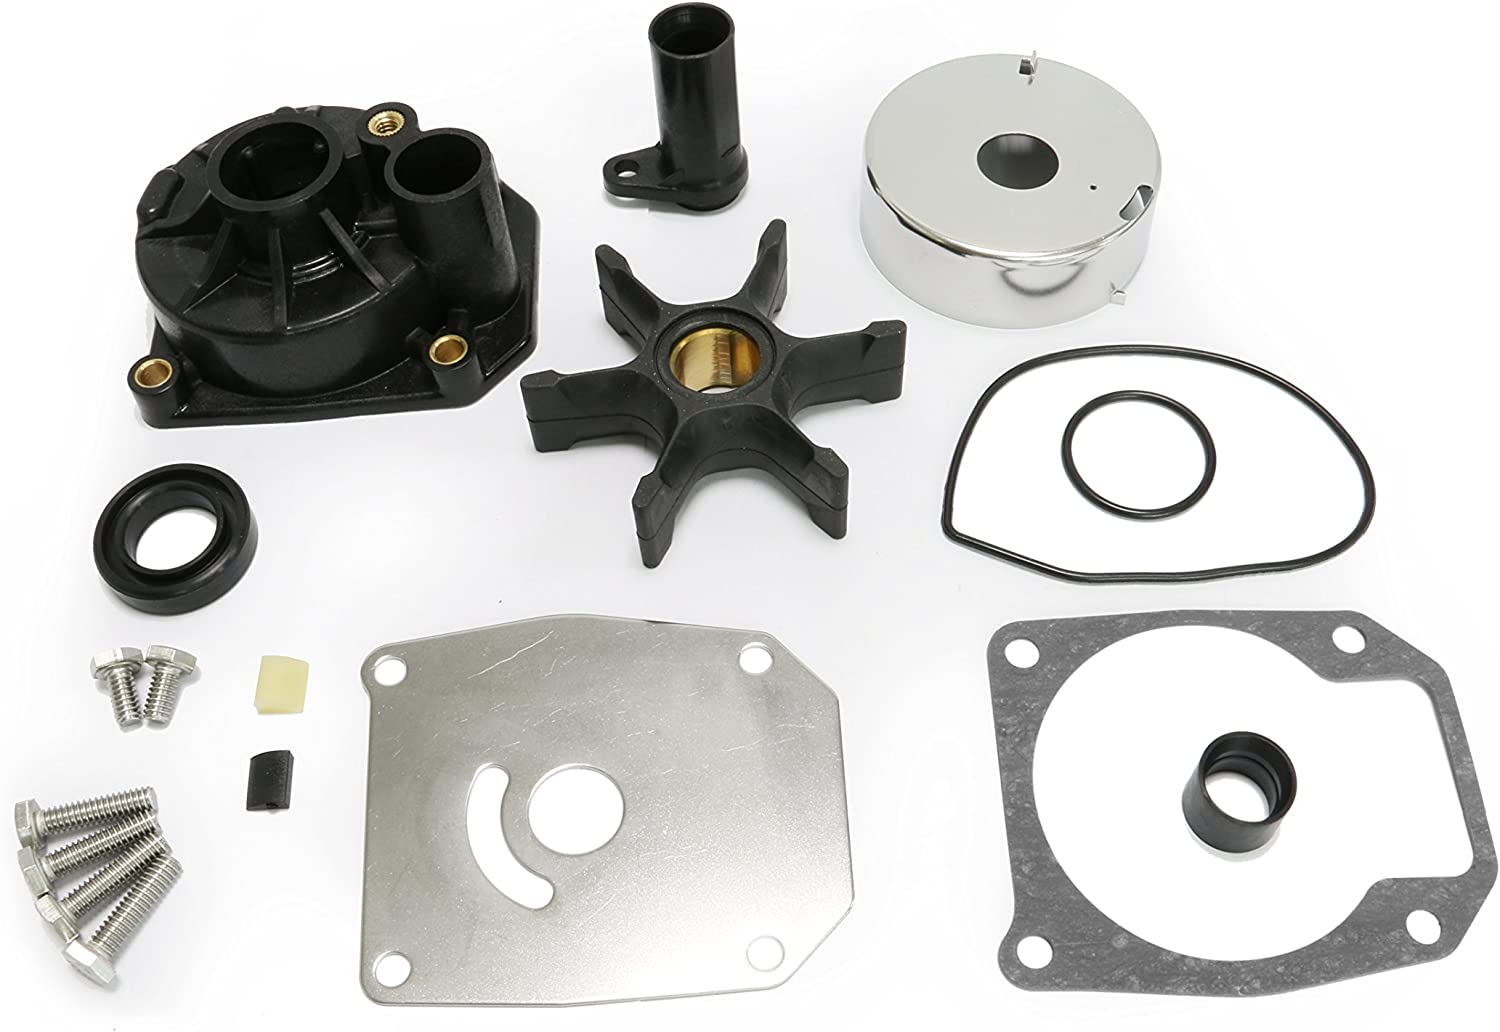 Createshao Outboard Water Pump Kit for Johnson Evinrude Boat Engine 432955 65//70//75 HP OMC